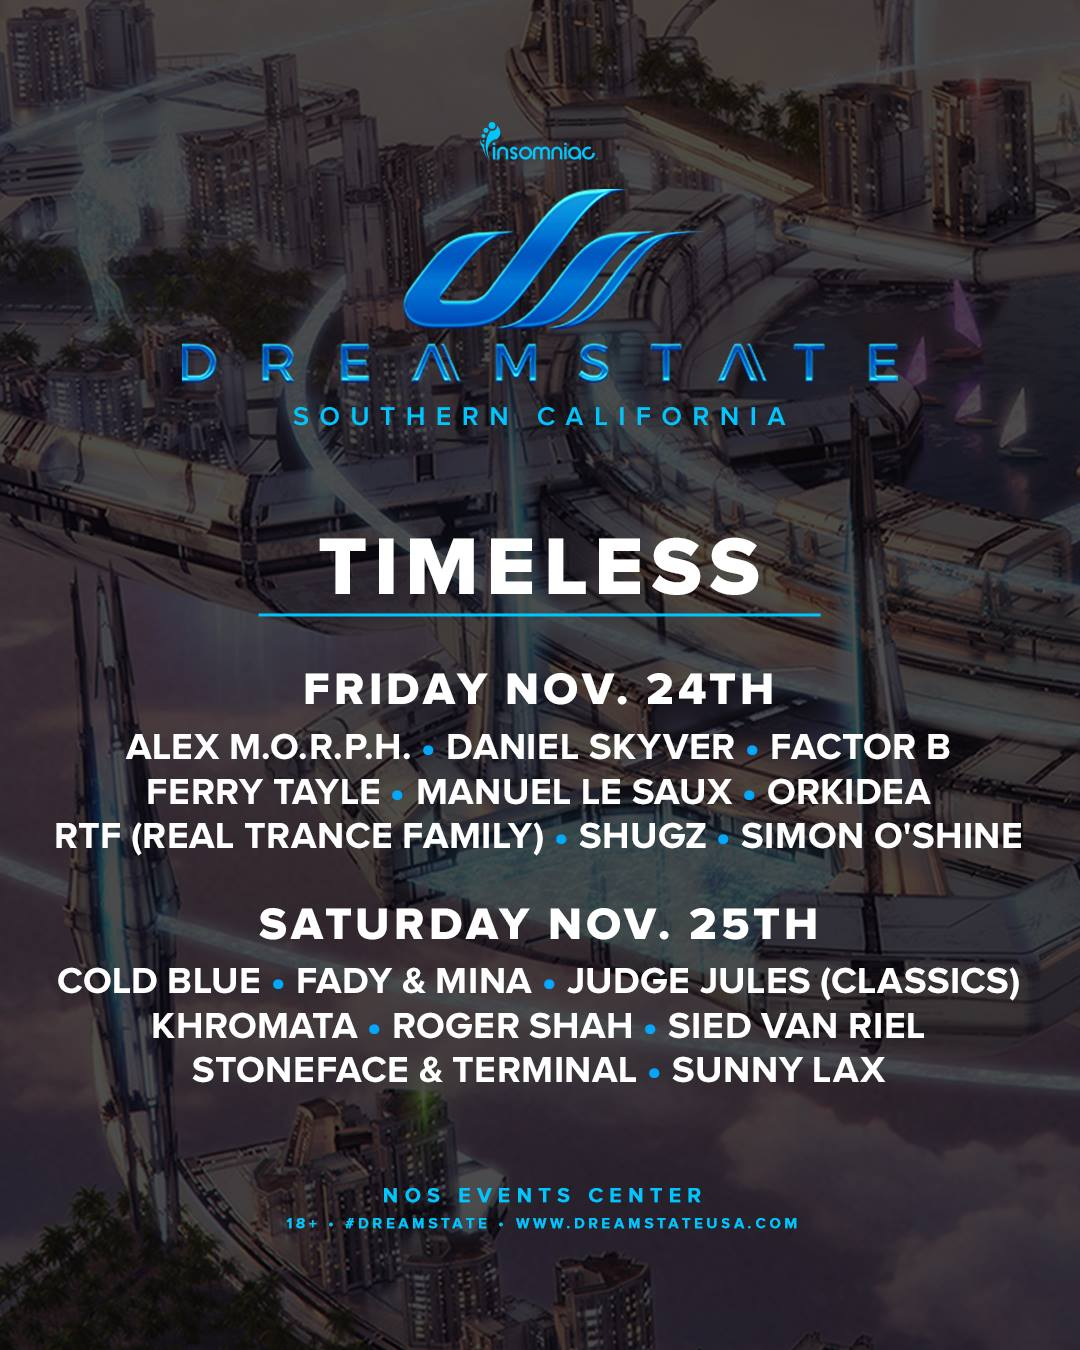 Dreamstate SoCal 2017 Timeless